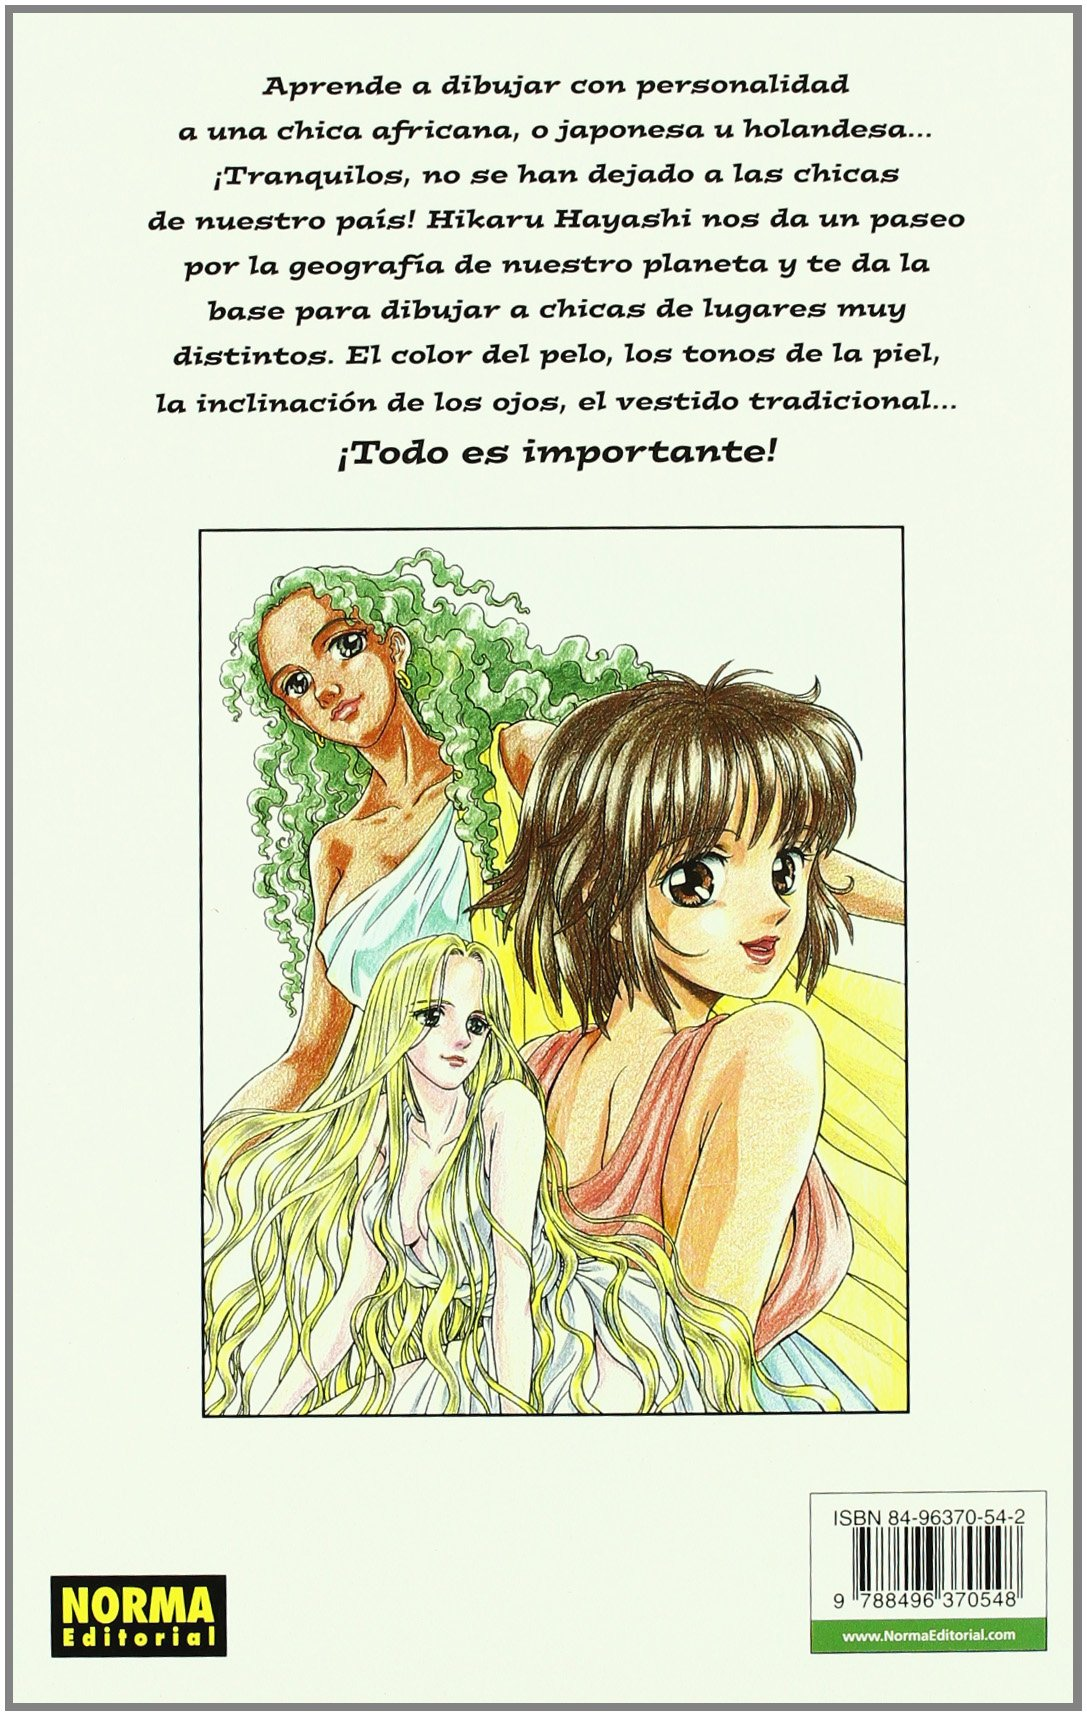 Amazon.com: Como Dibujar Manga 14 Chicas Del Mundo / How to Draw Manga 14 Girls From World (Spanish Edition) (9788496370548): Hikaru Hayashi: Books